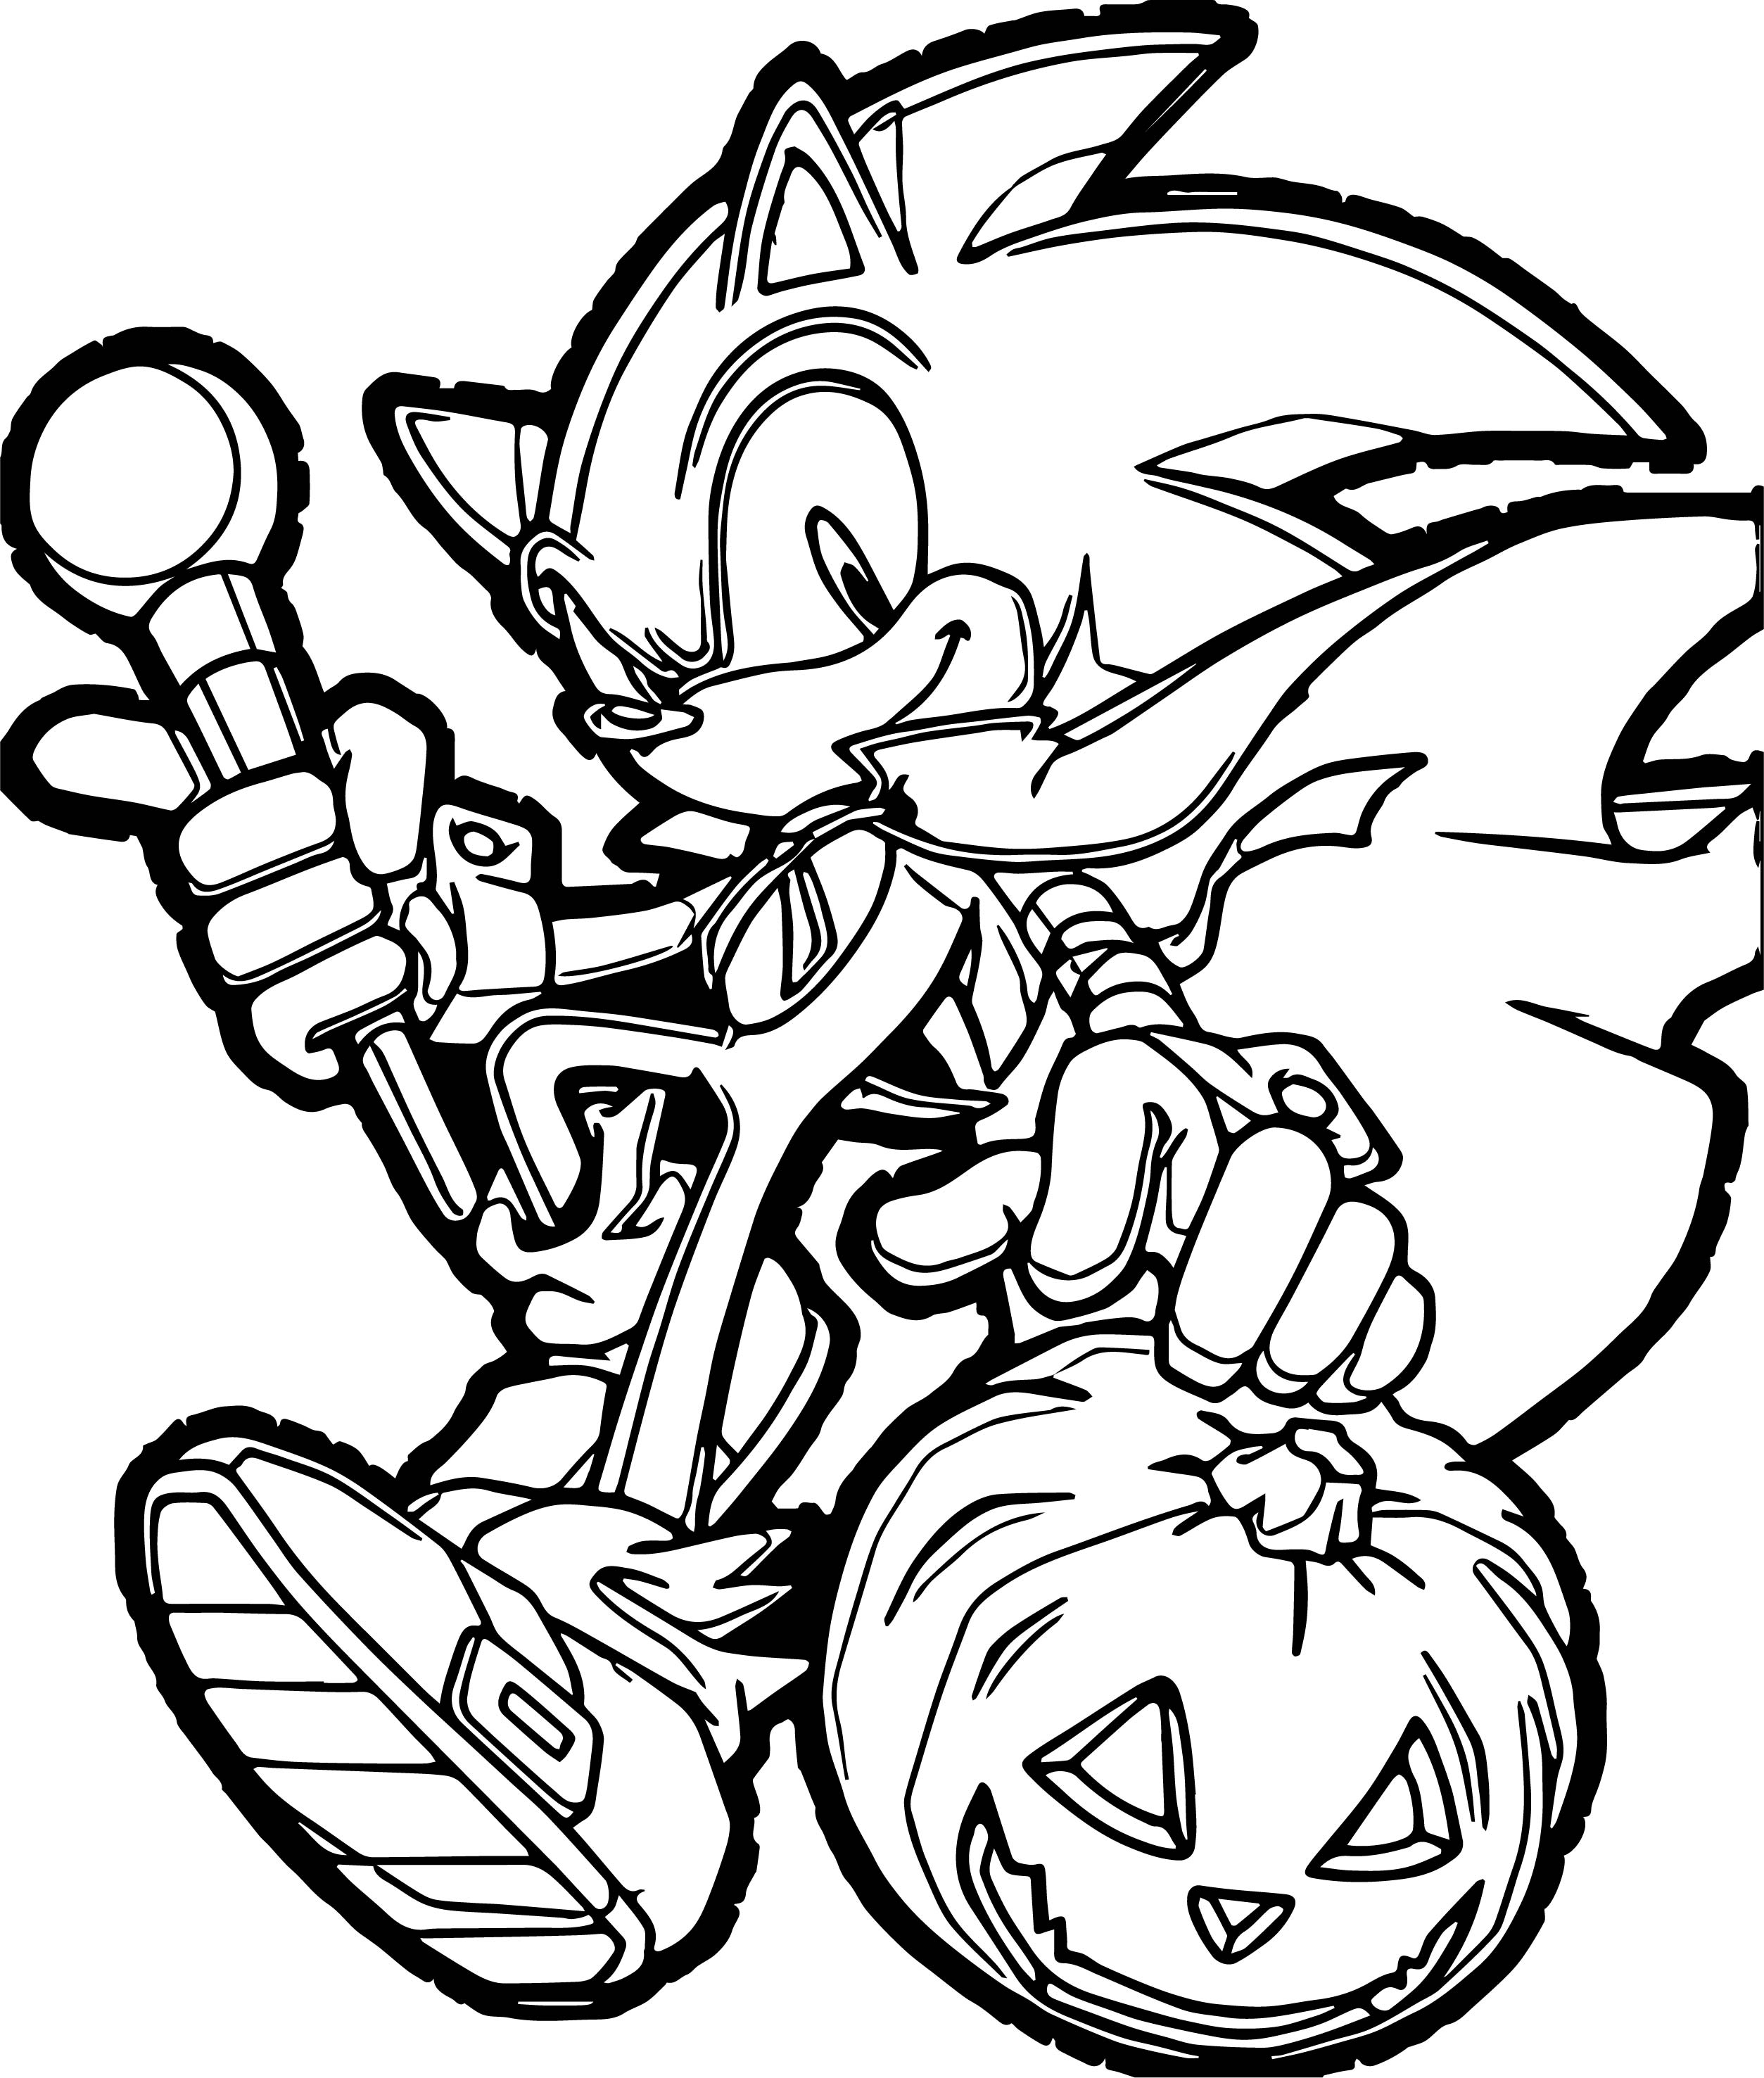 Sonic The Hedgehog Halloween Pumpkin Coloring Page